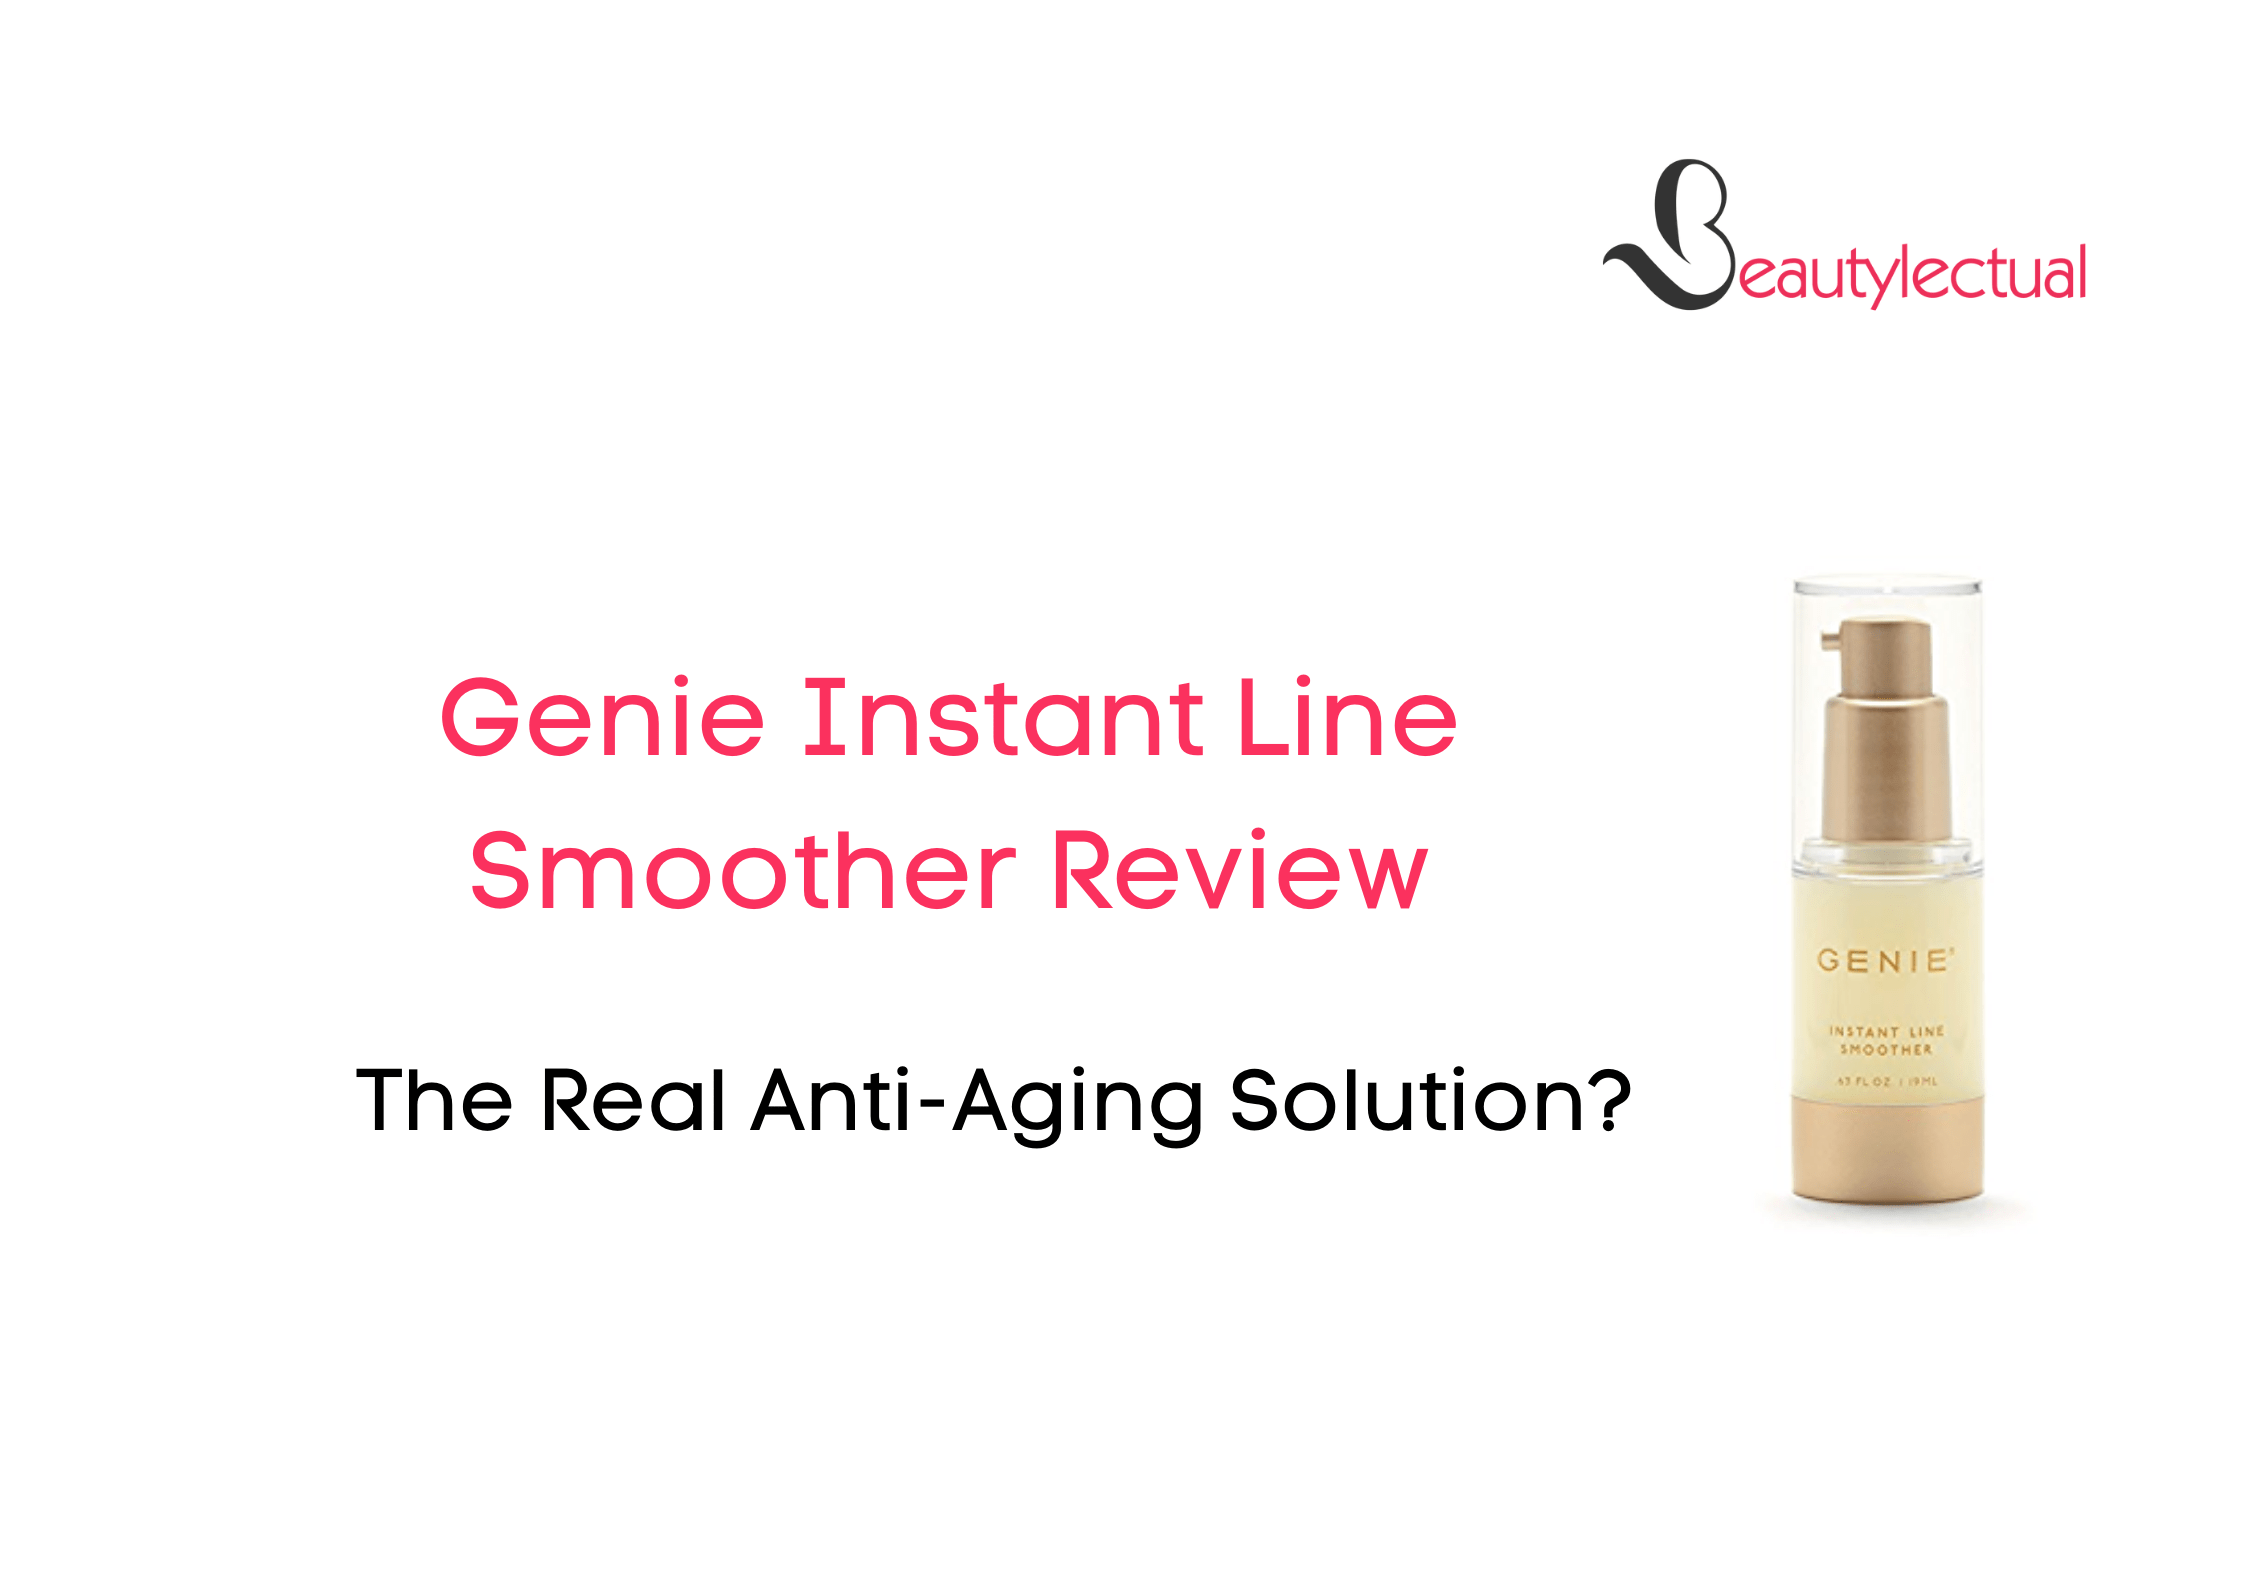 Genie Instant Line Smoother Review